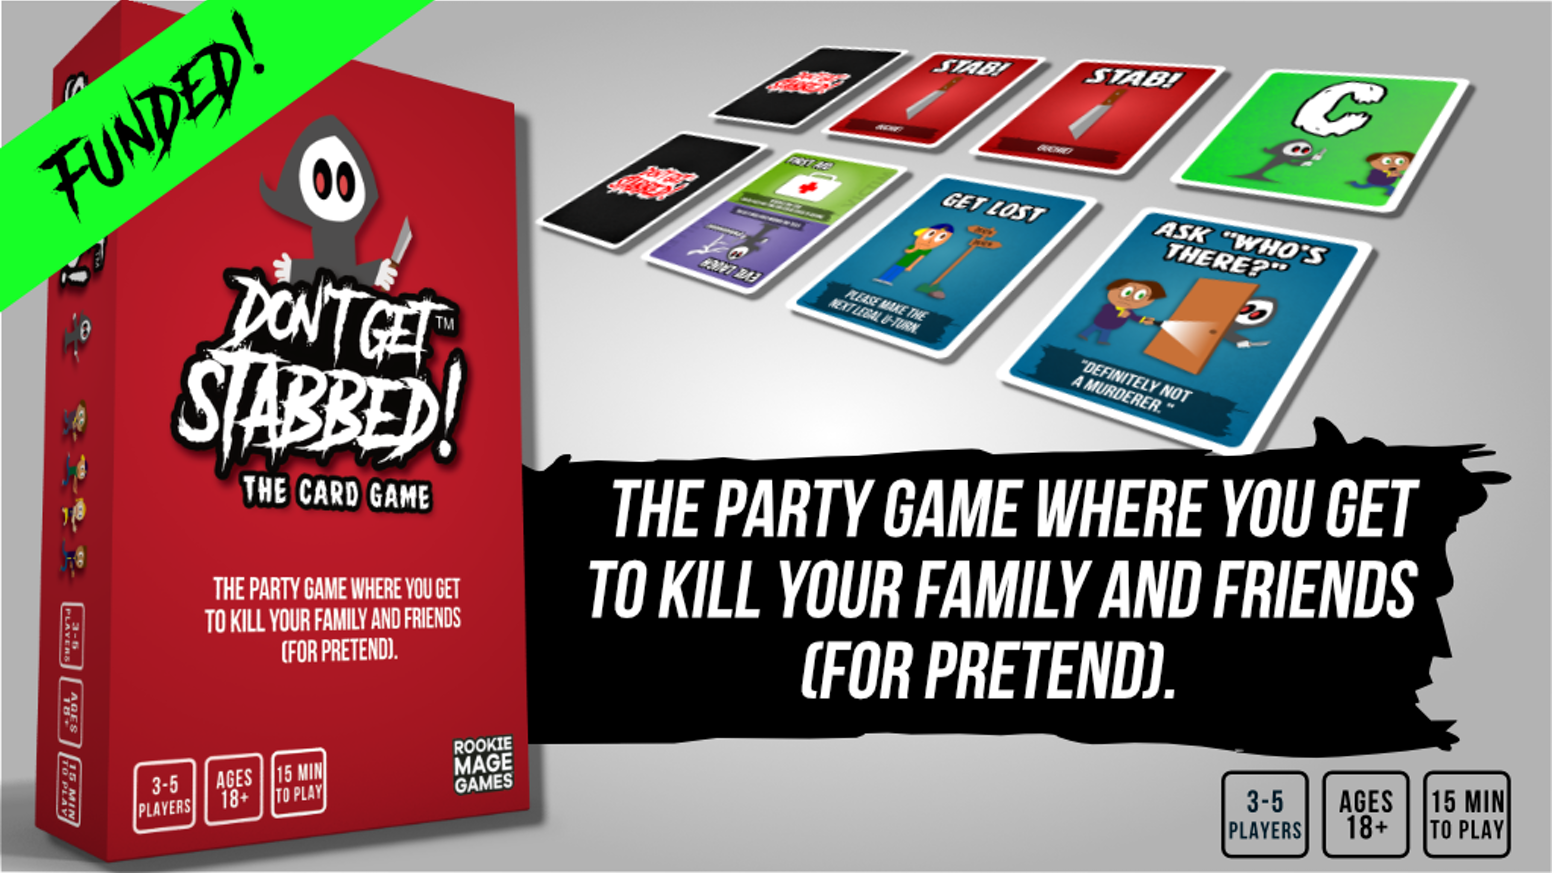 The party game where you get to kill your family and friends (for pretend).